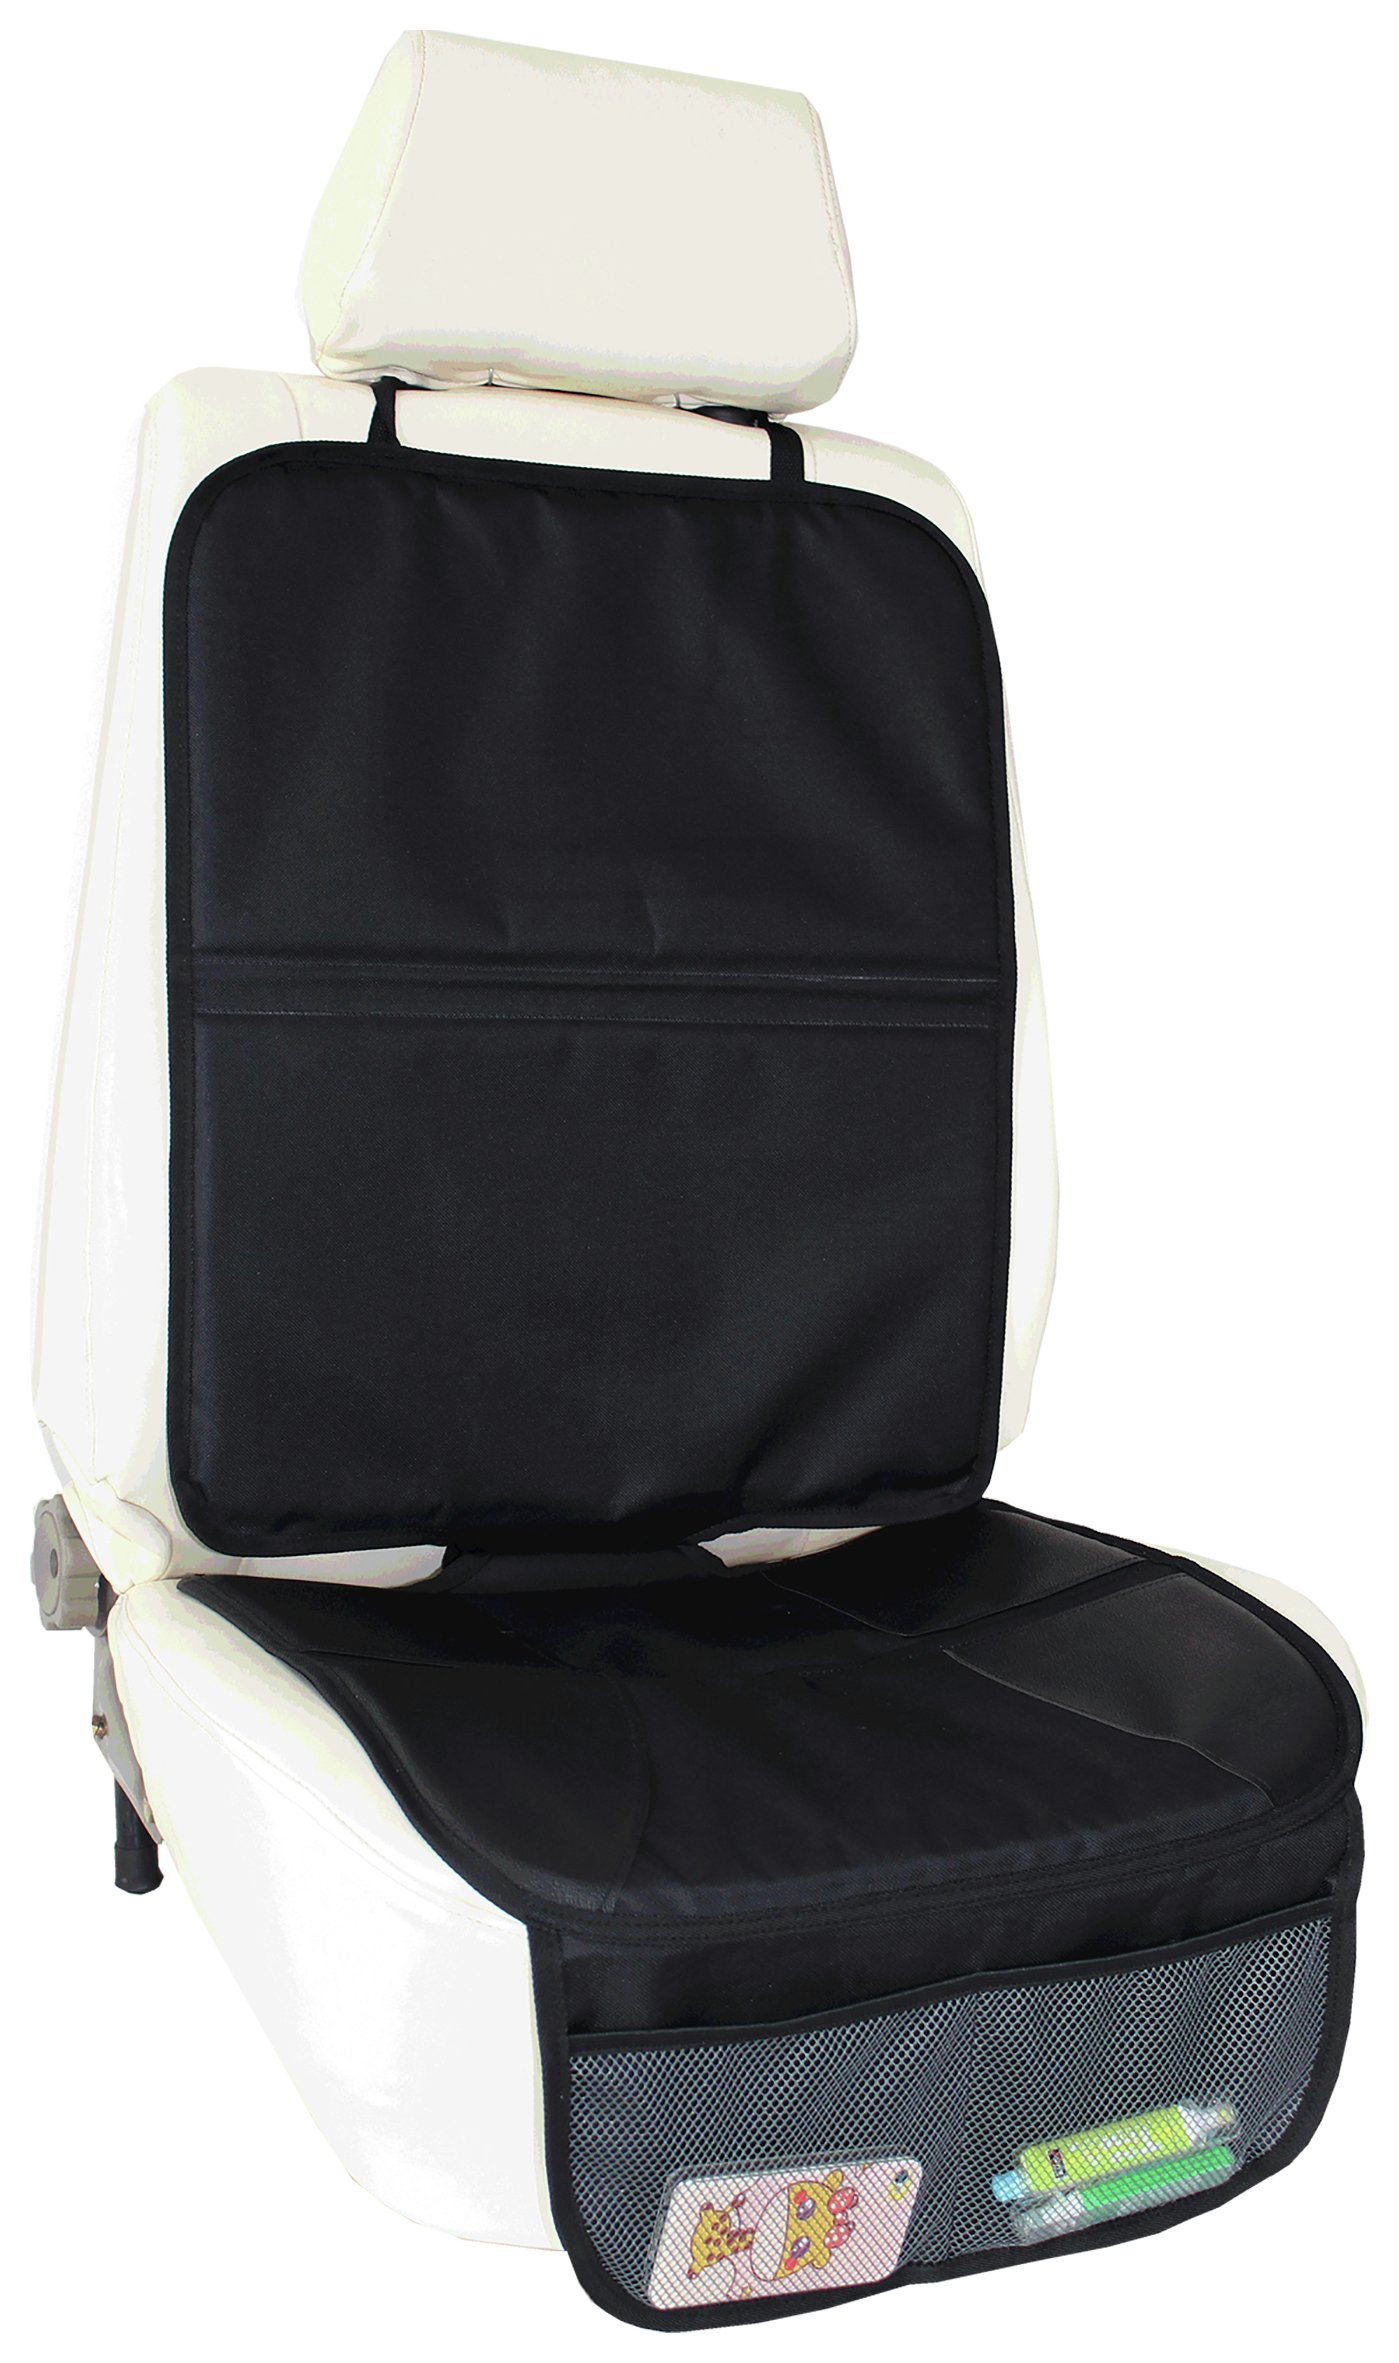 Image of Babydan Car Seat Protector with Storage